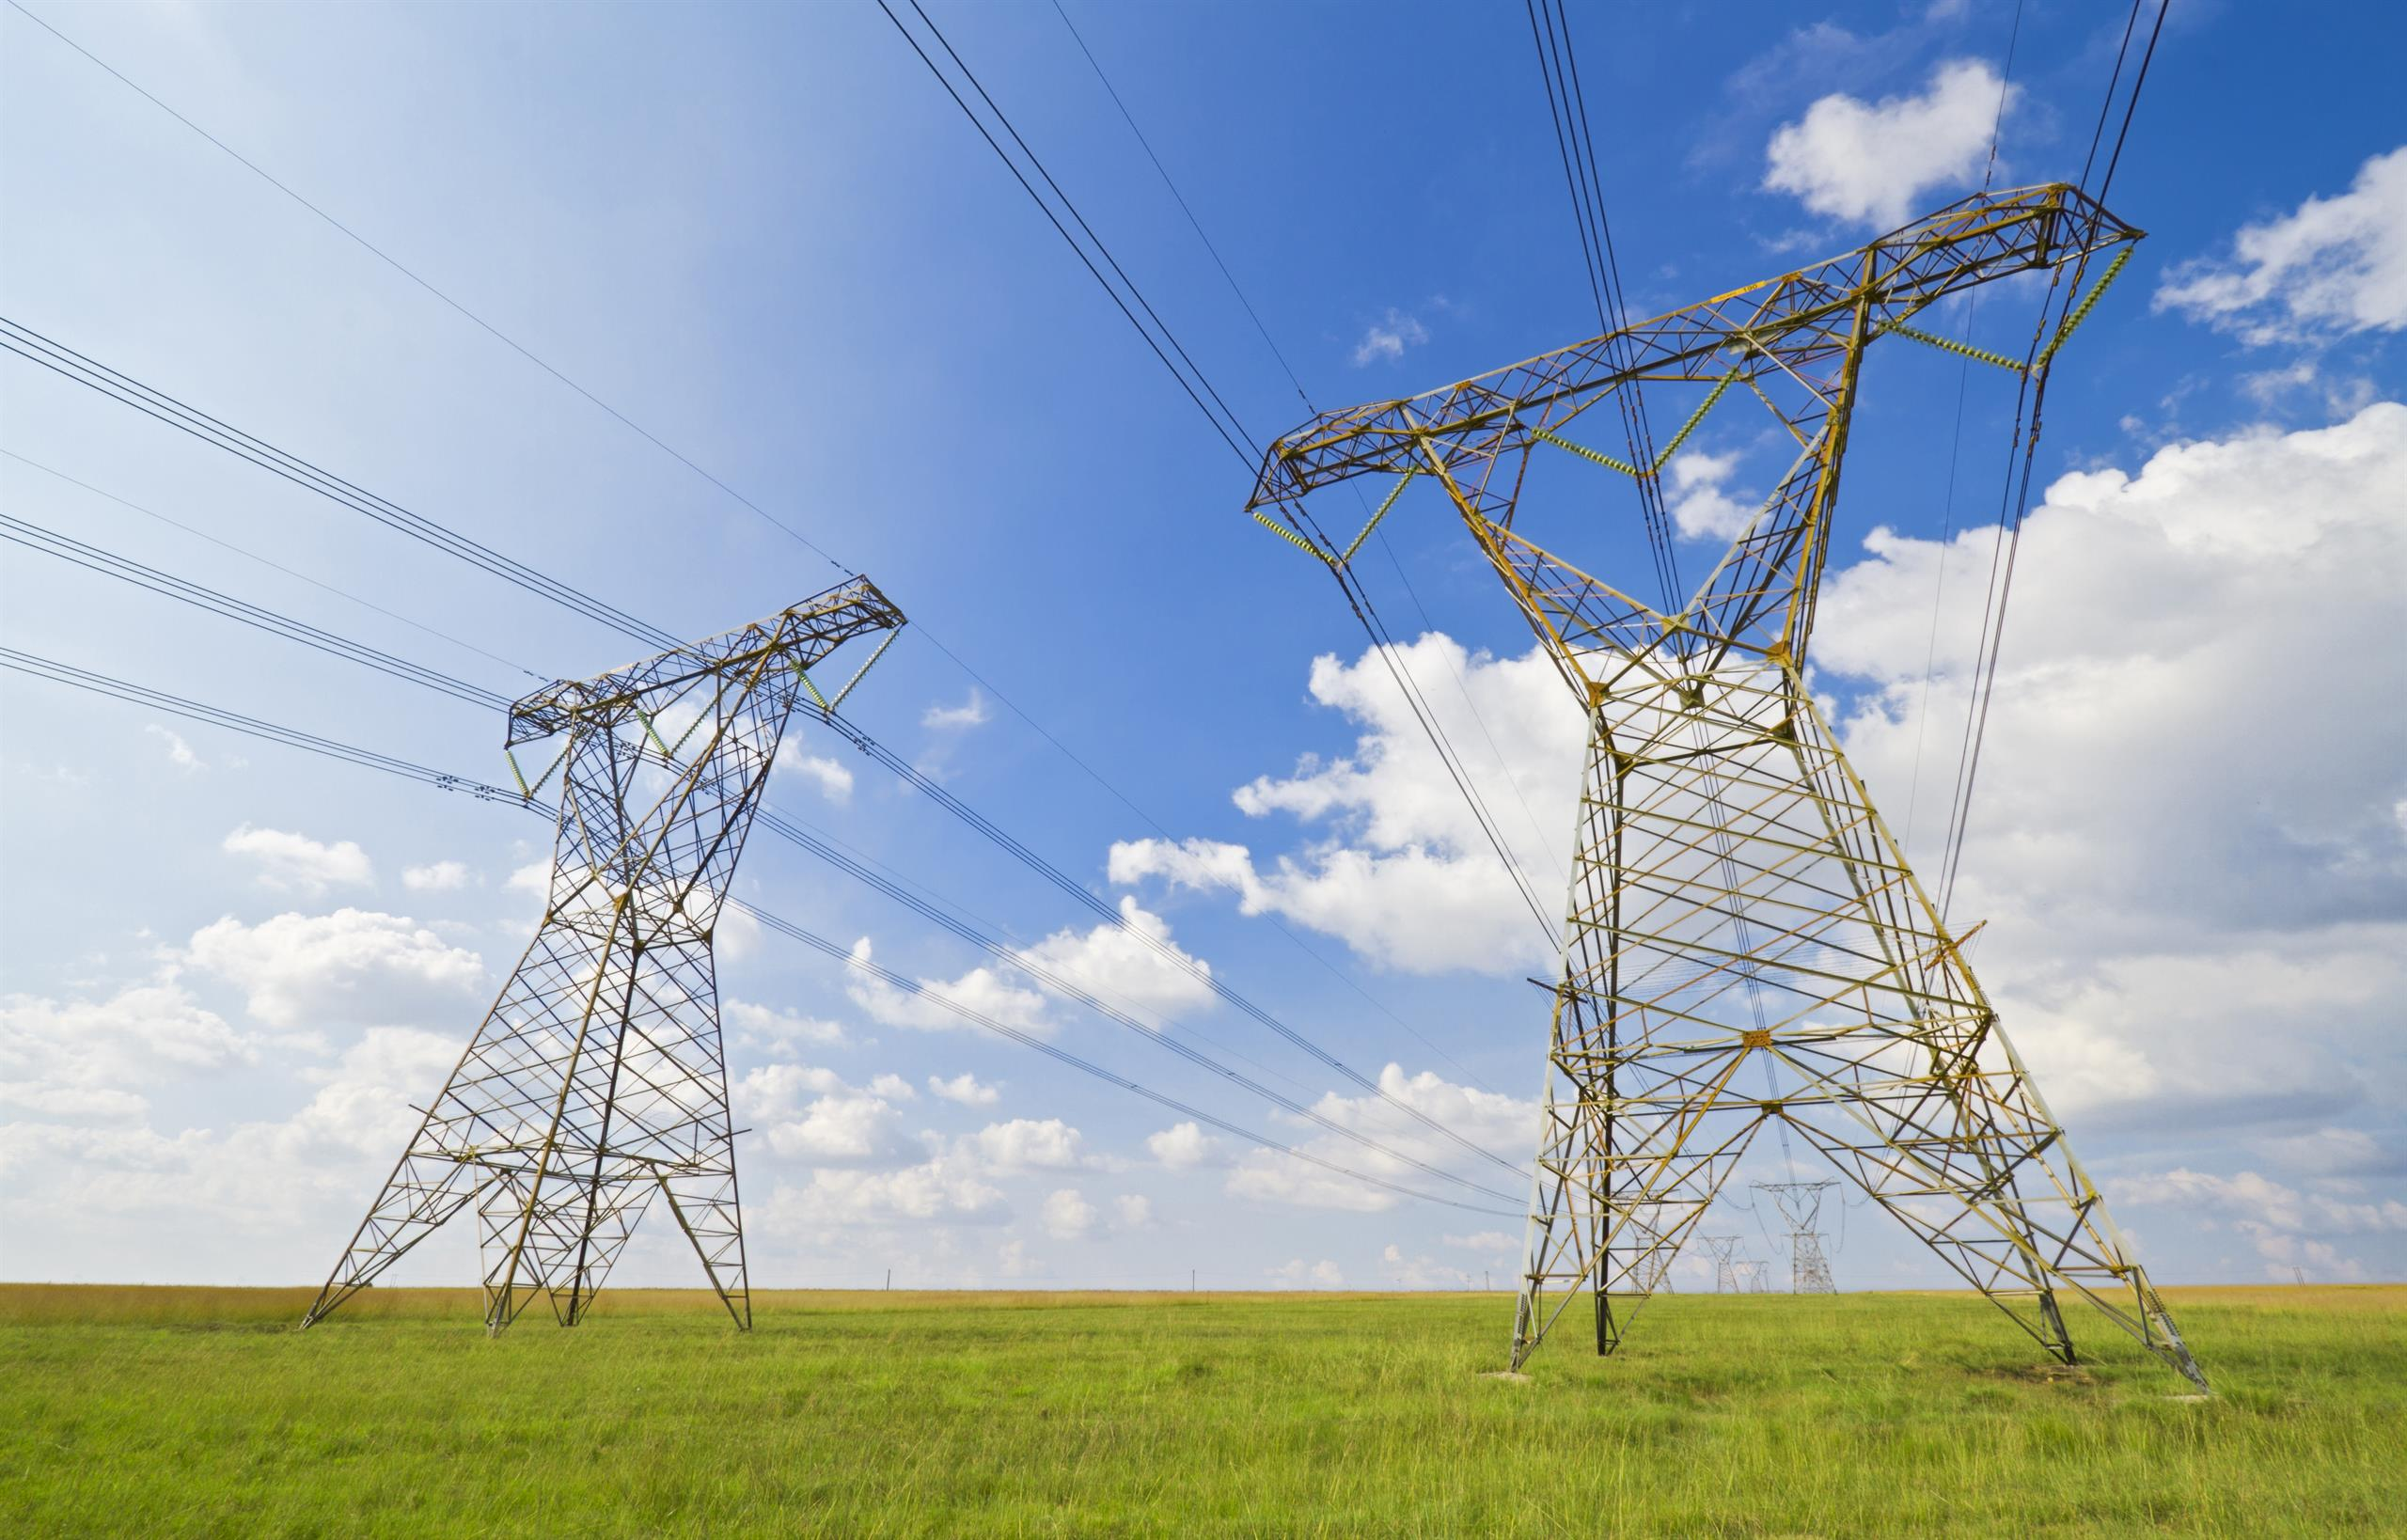 Transmission pylons